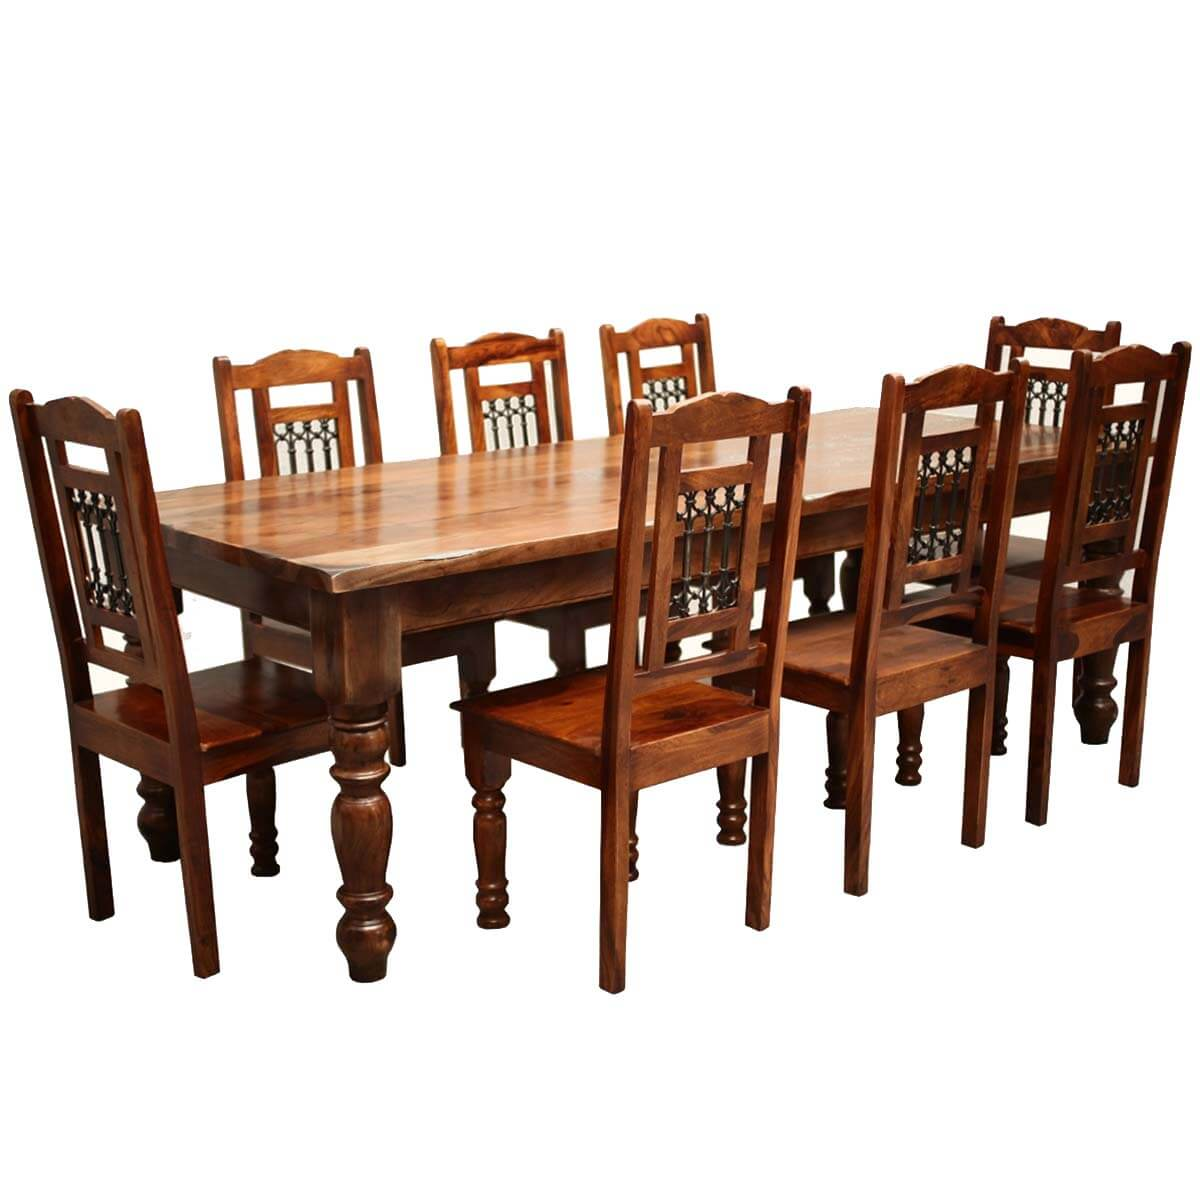 Rustic furniture solid wood large dining table 8 chair set for Dining table chairs